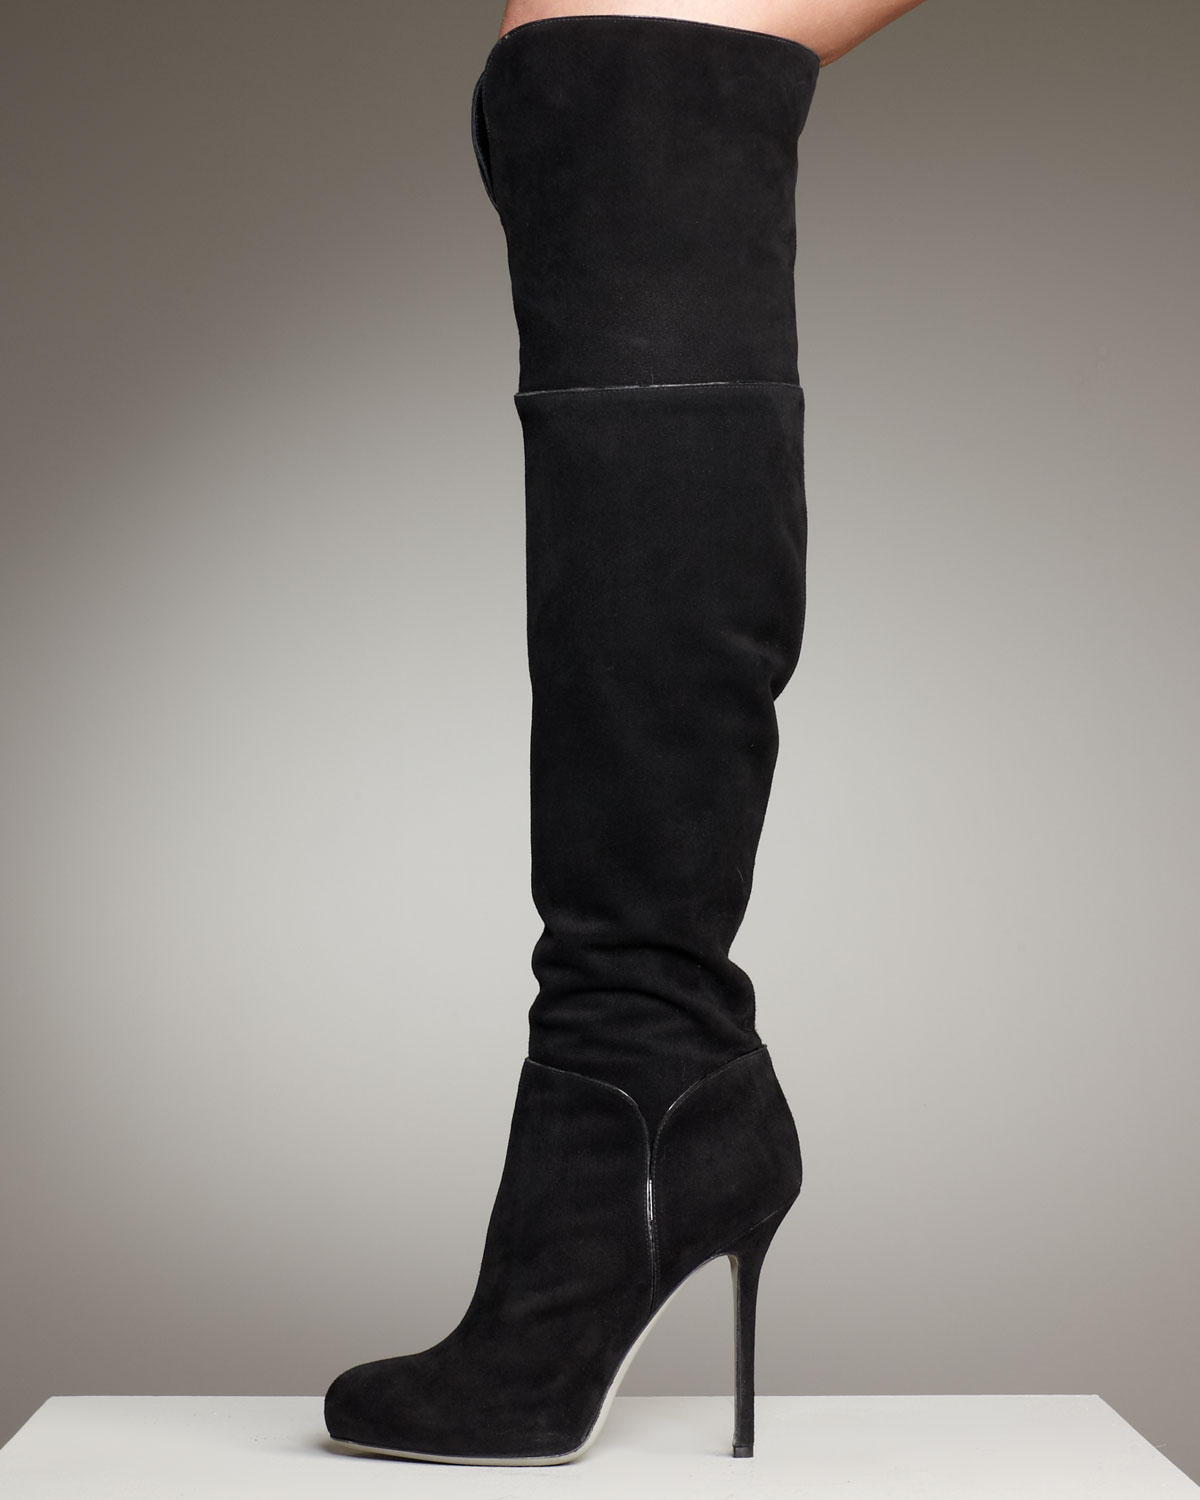 Sergio Rossi Suede Over-The-Knee Boots best seller online 2015 cheap online outlet professional outlet big discount 1Mf2OkW8